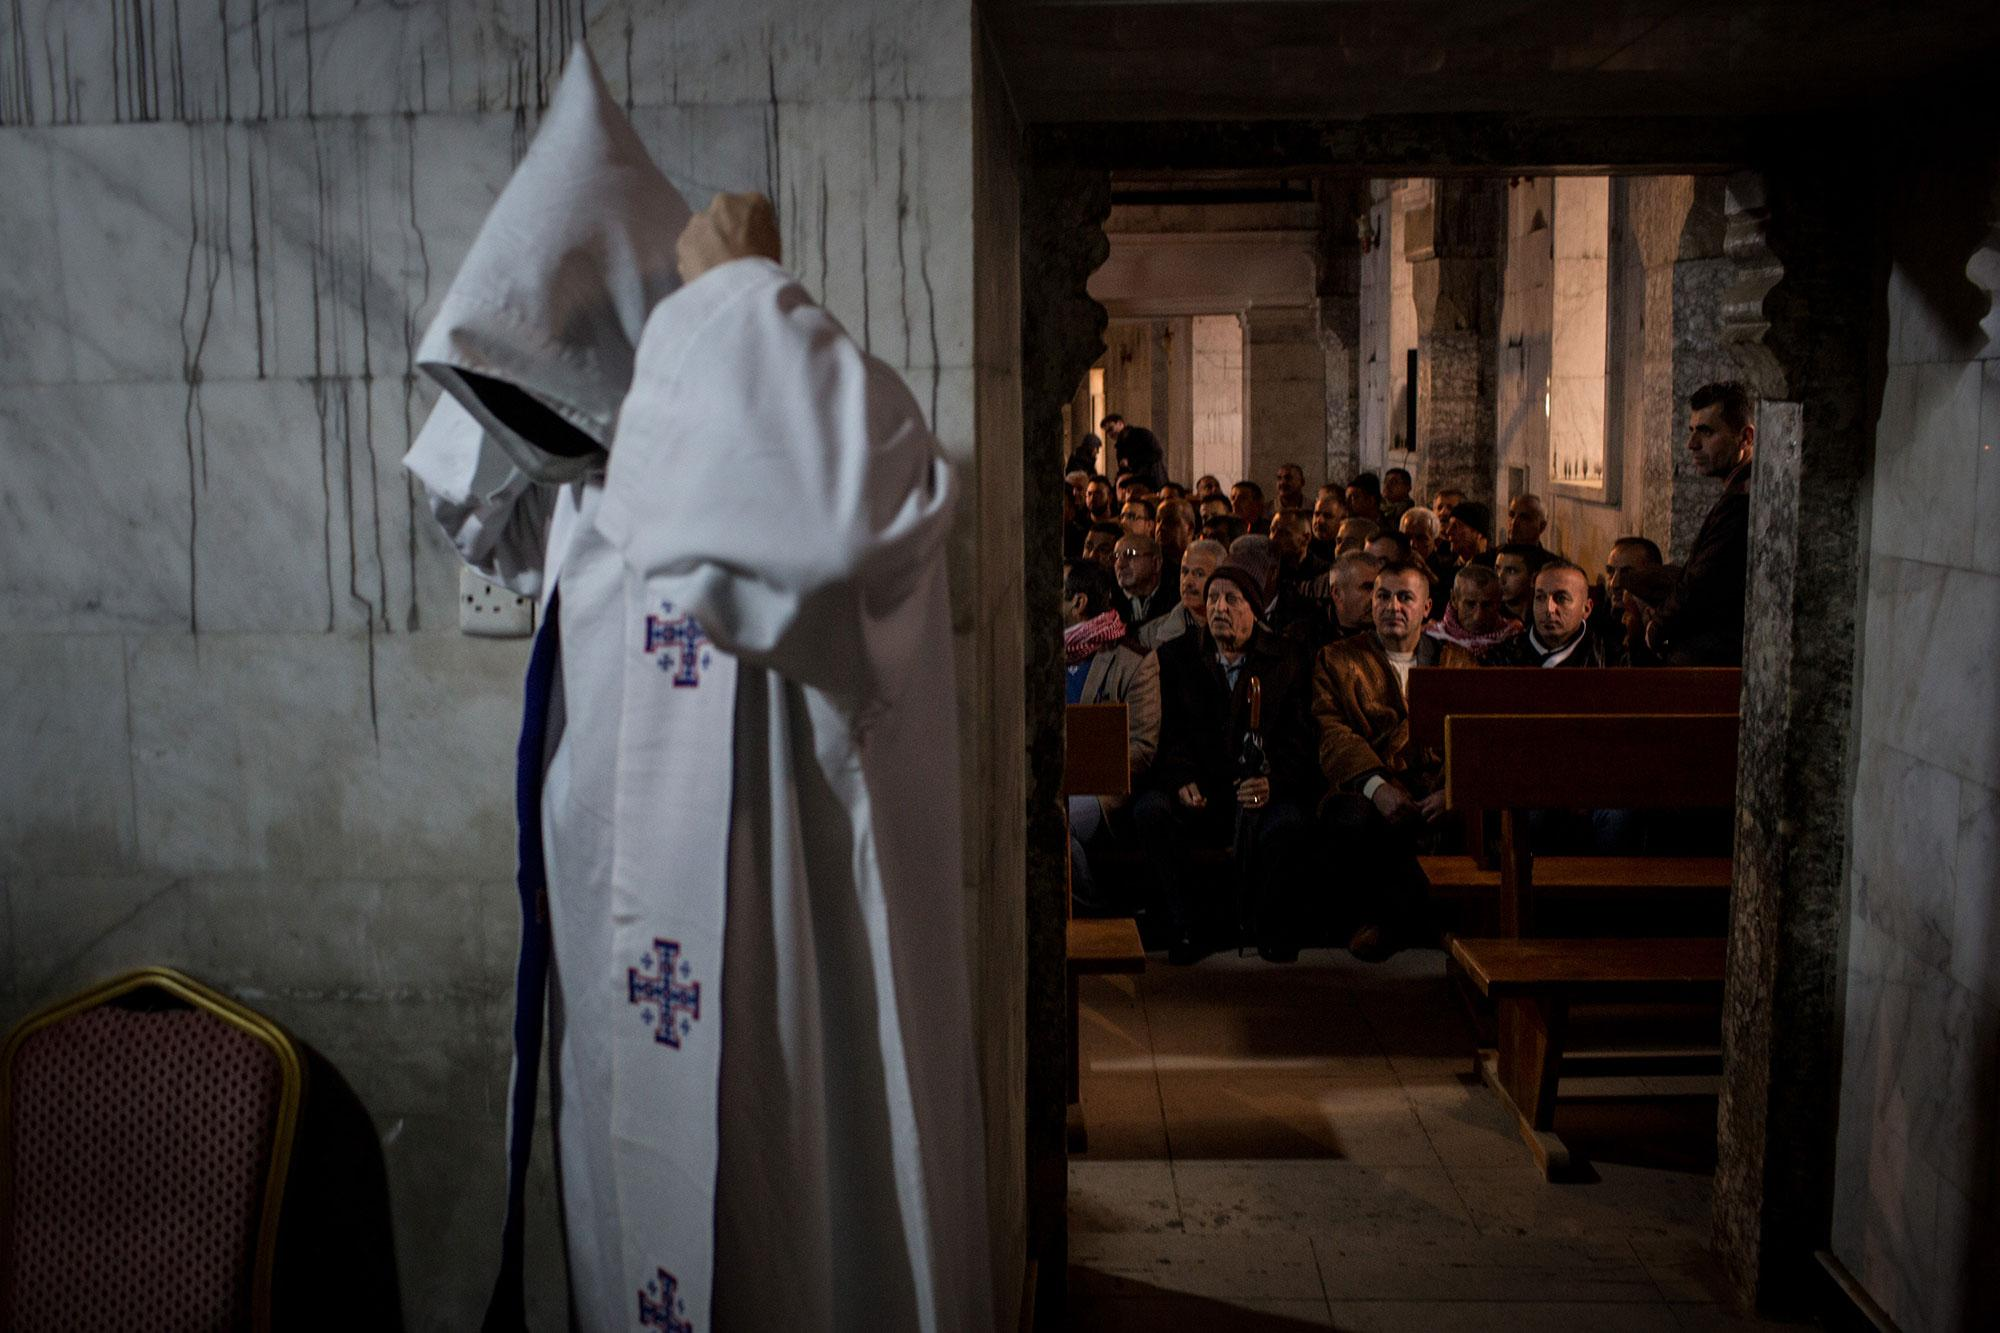 <p>People wait for the start of Christmas mass at the Mar Shimoni Church on Dec. 24, 2016 in Bartella, Iraq. The predominantly Christian town of Bartella was recently liberated from ISIL as part of the Mosul offensive. The town's four churches were heavily damaged and defaced during the two year occupation. The Christmas mass marks the first official mass in Bartella since a mass was held on Aug. 14, 2014 just hours before ISIS arrived. Christian communities around Mosul are celebrating Christmas as the Mosul offensive continues. (Photo: Chris McGrath/Getty Images) </p>